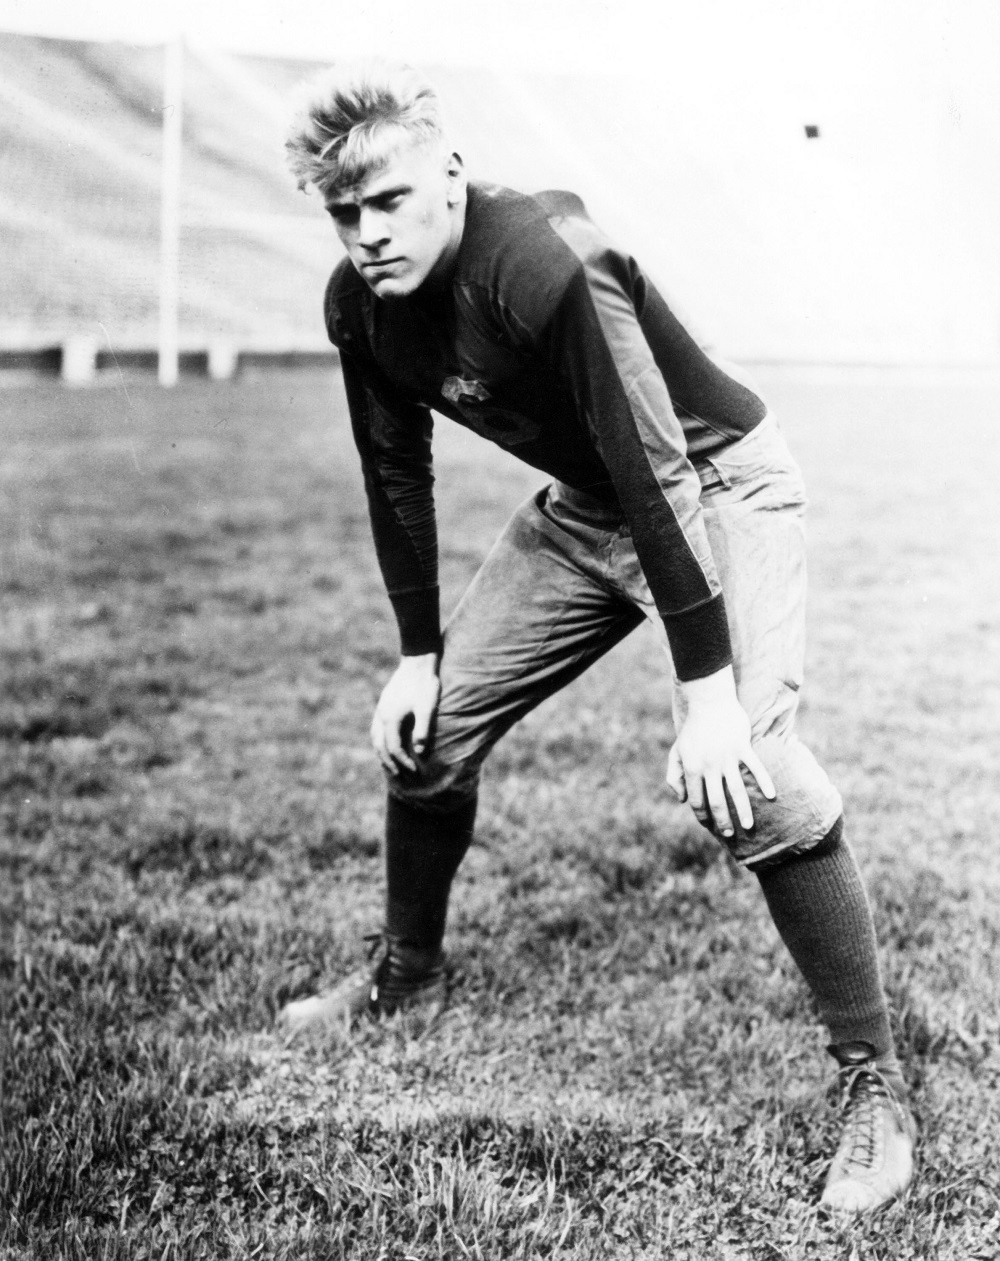 Former President Gerald Ford played center for the University of Michigan Wolverines